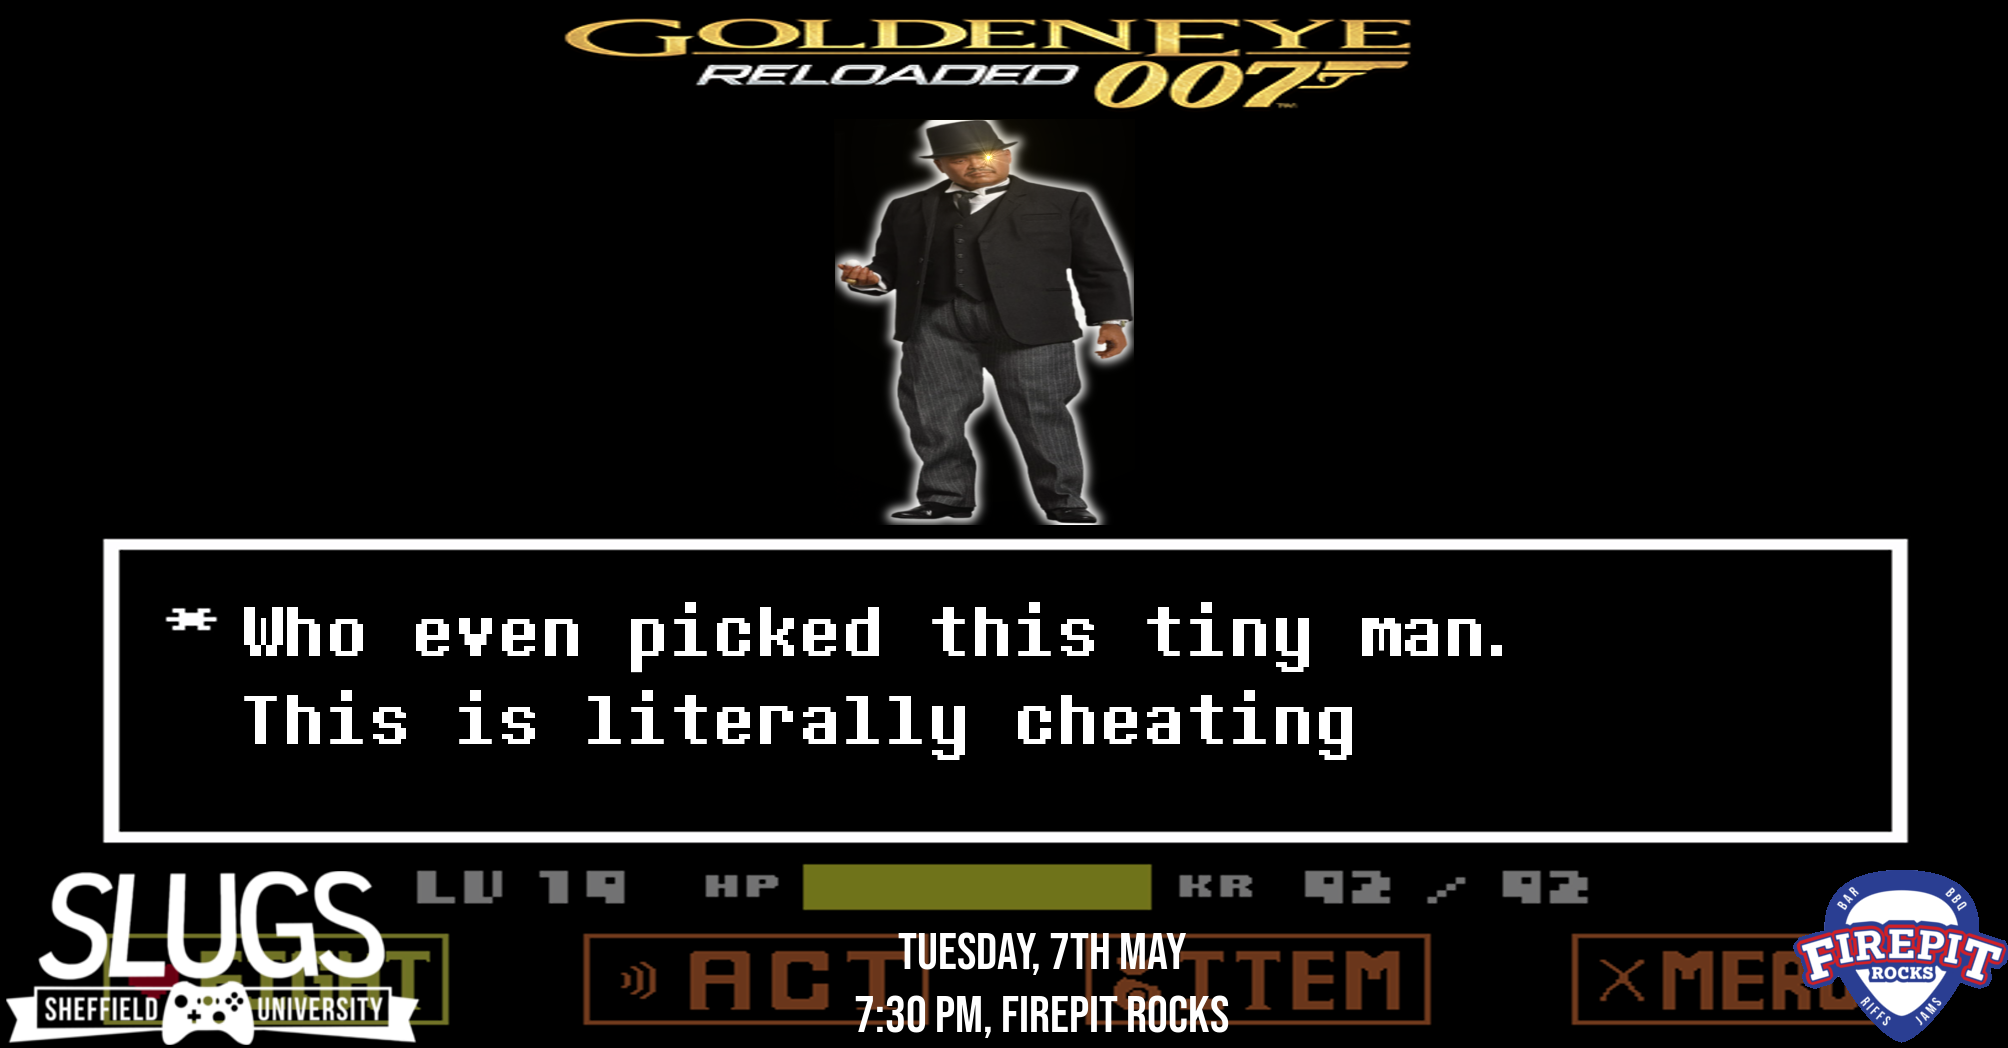 GoldenEye Reloaded Social: Tuesday 7th May